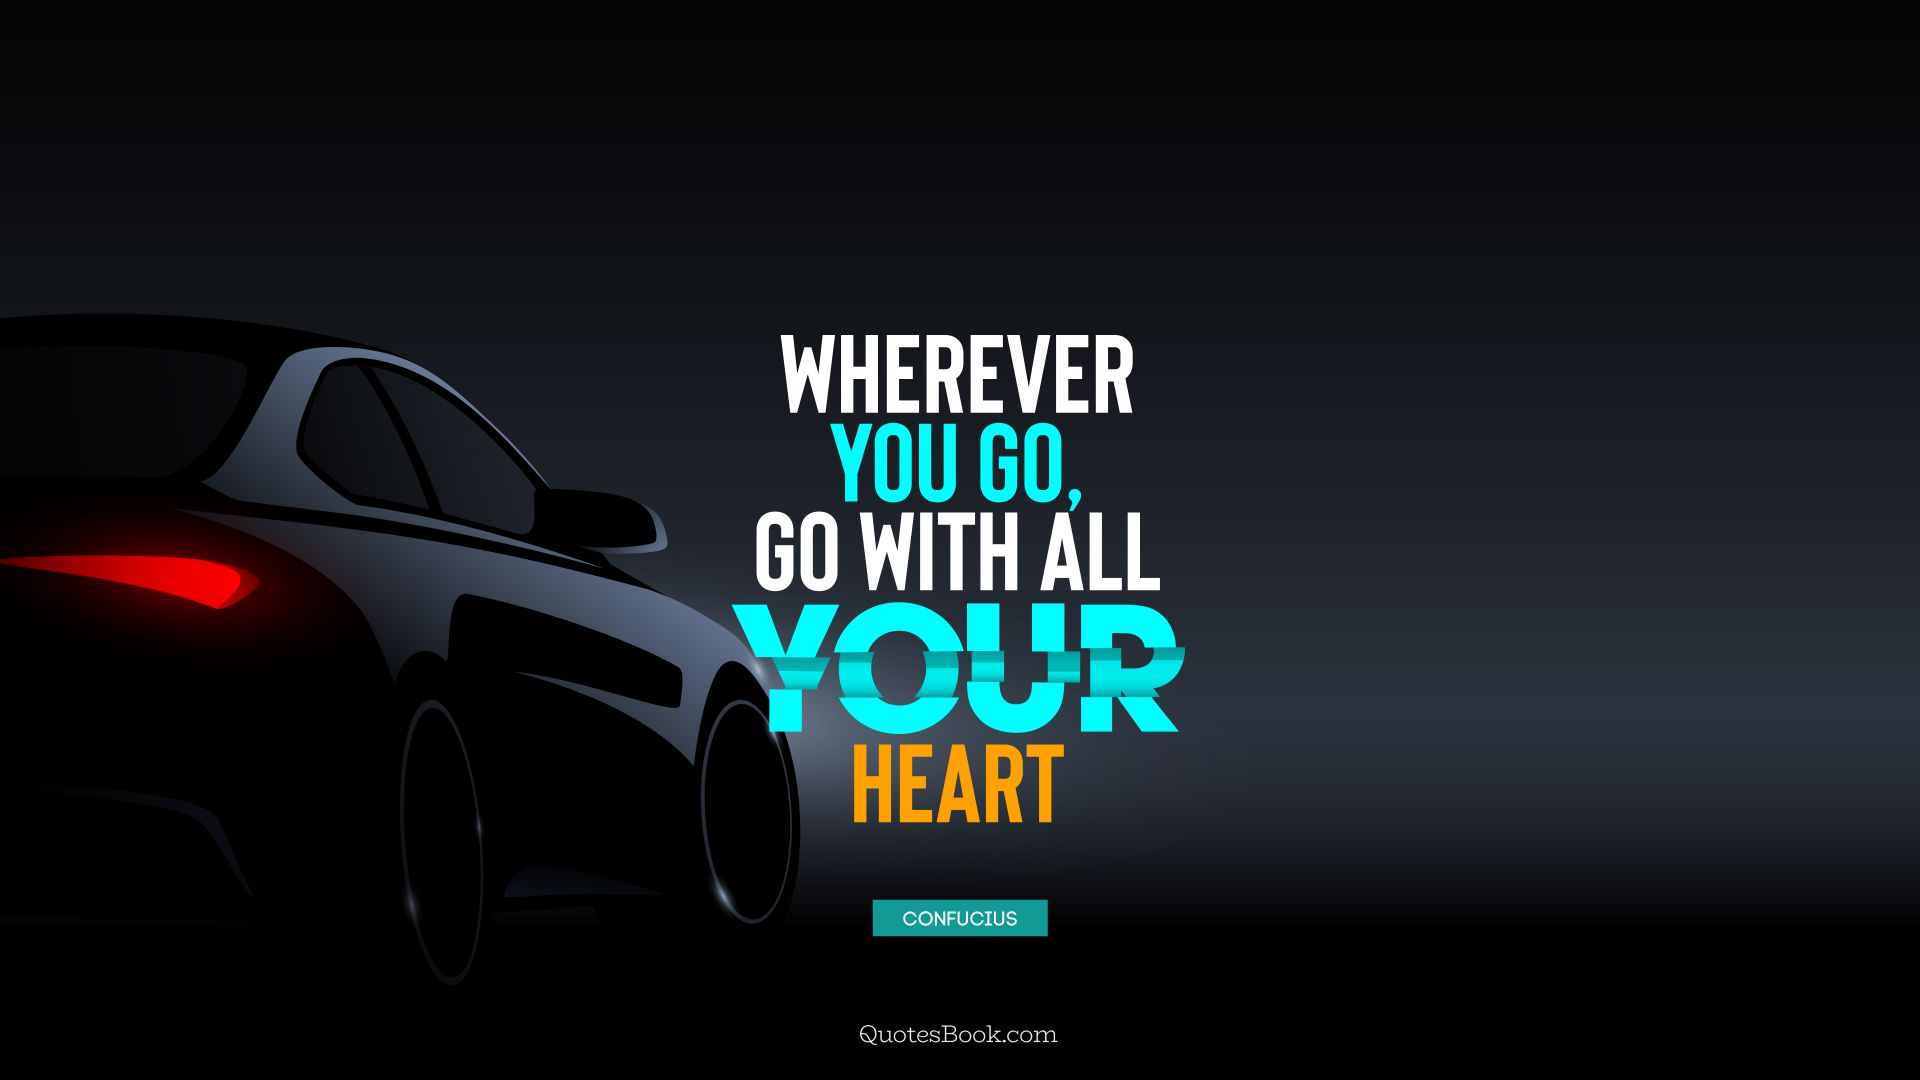 Wherever you go, go with all your heart  - Quote by Confucius